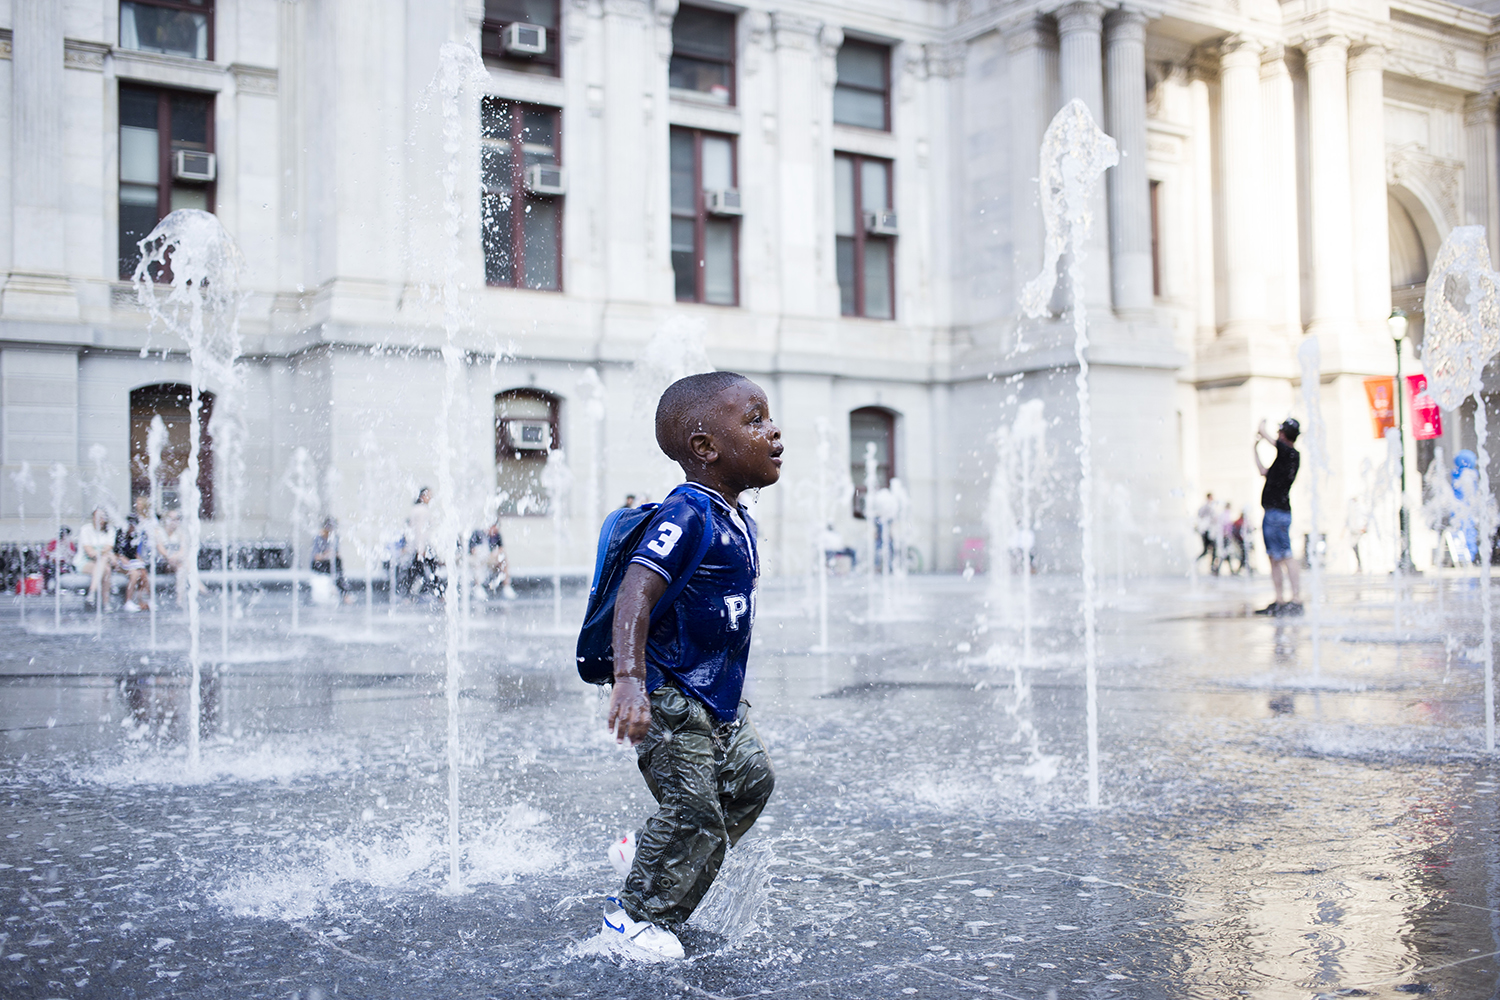 A young boy plays in a recycled-rainwater fountain at the newly unveiled Dilworth Park, which officially opened to the public on Sept. 4.